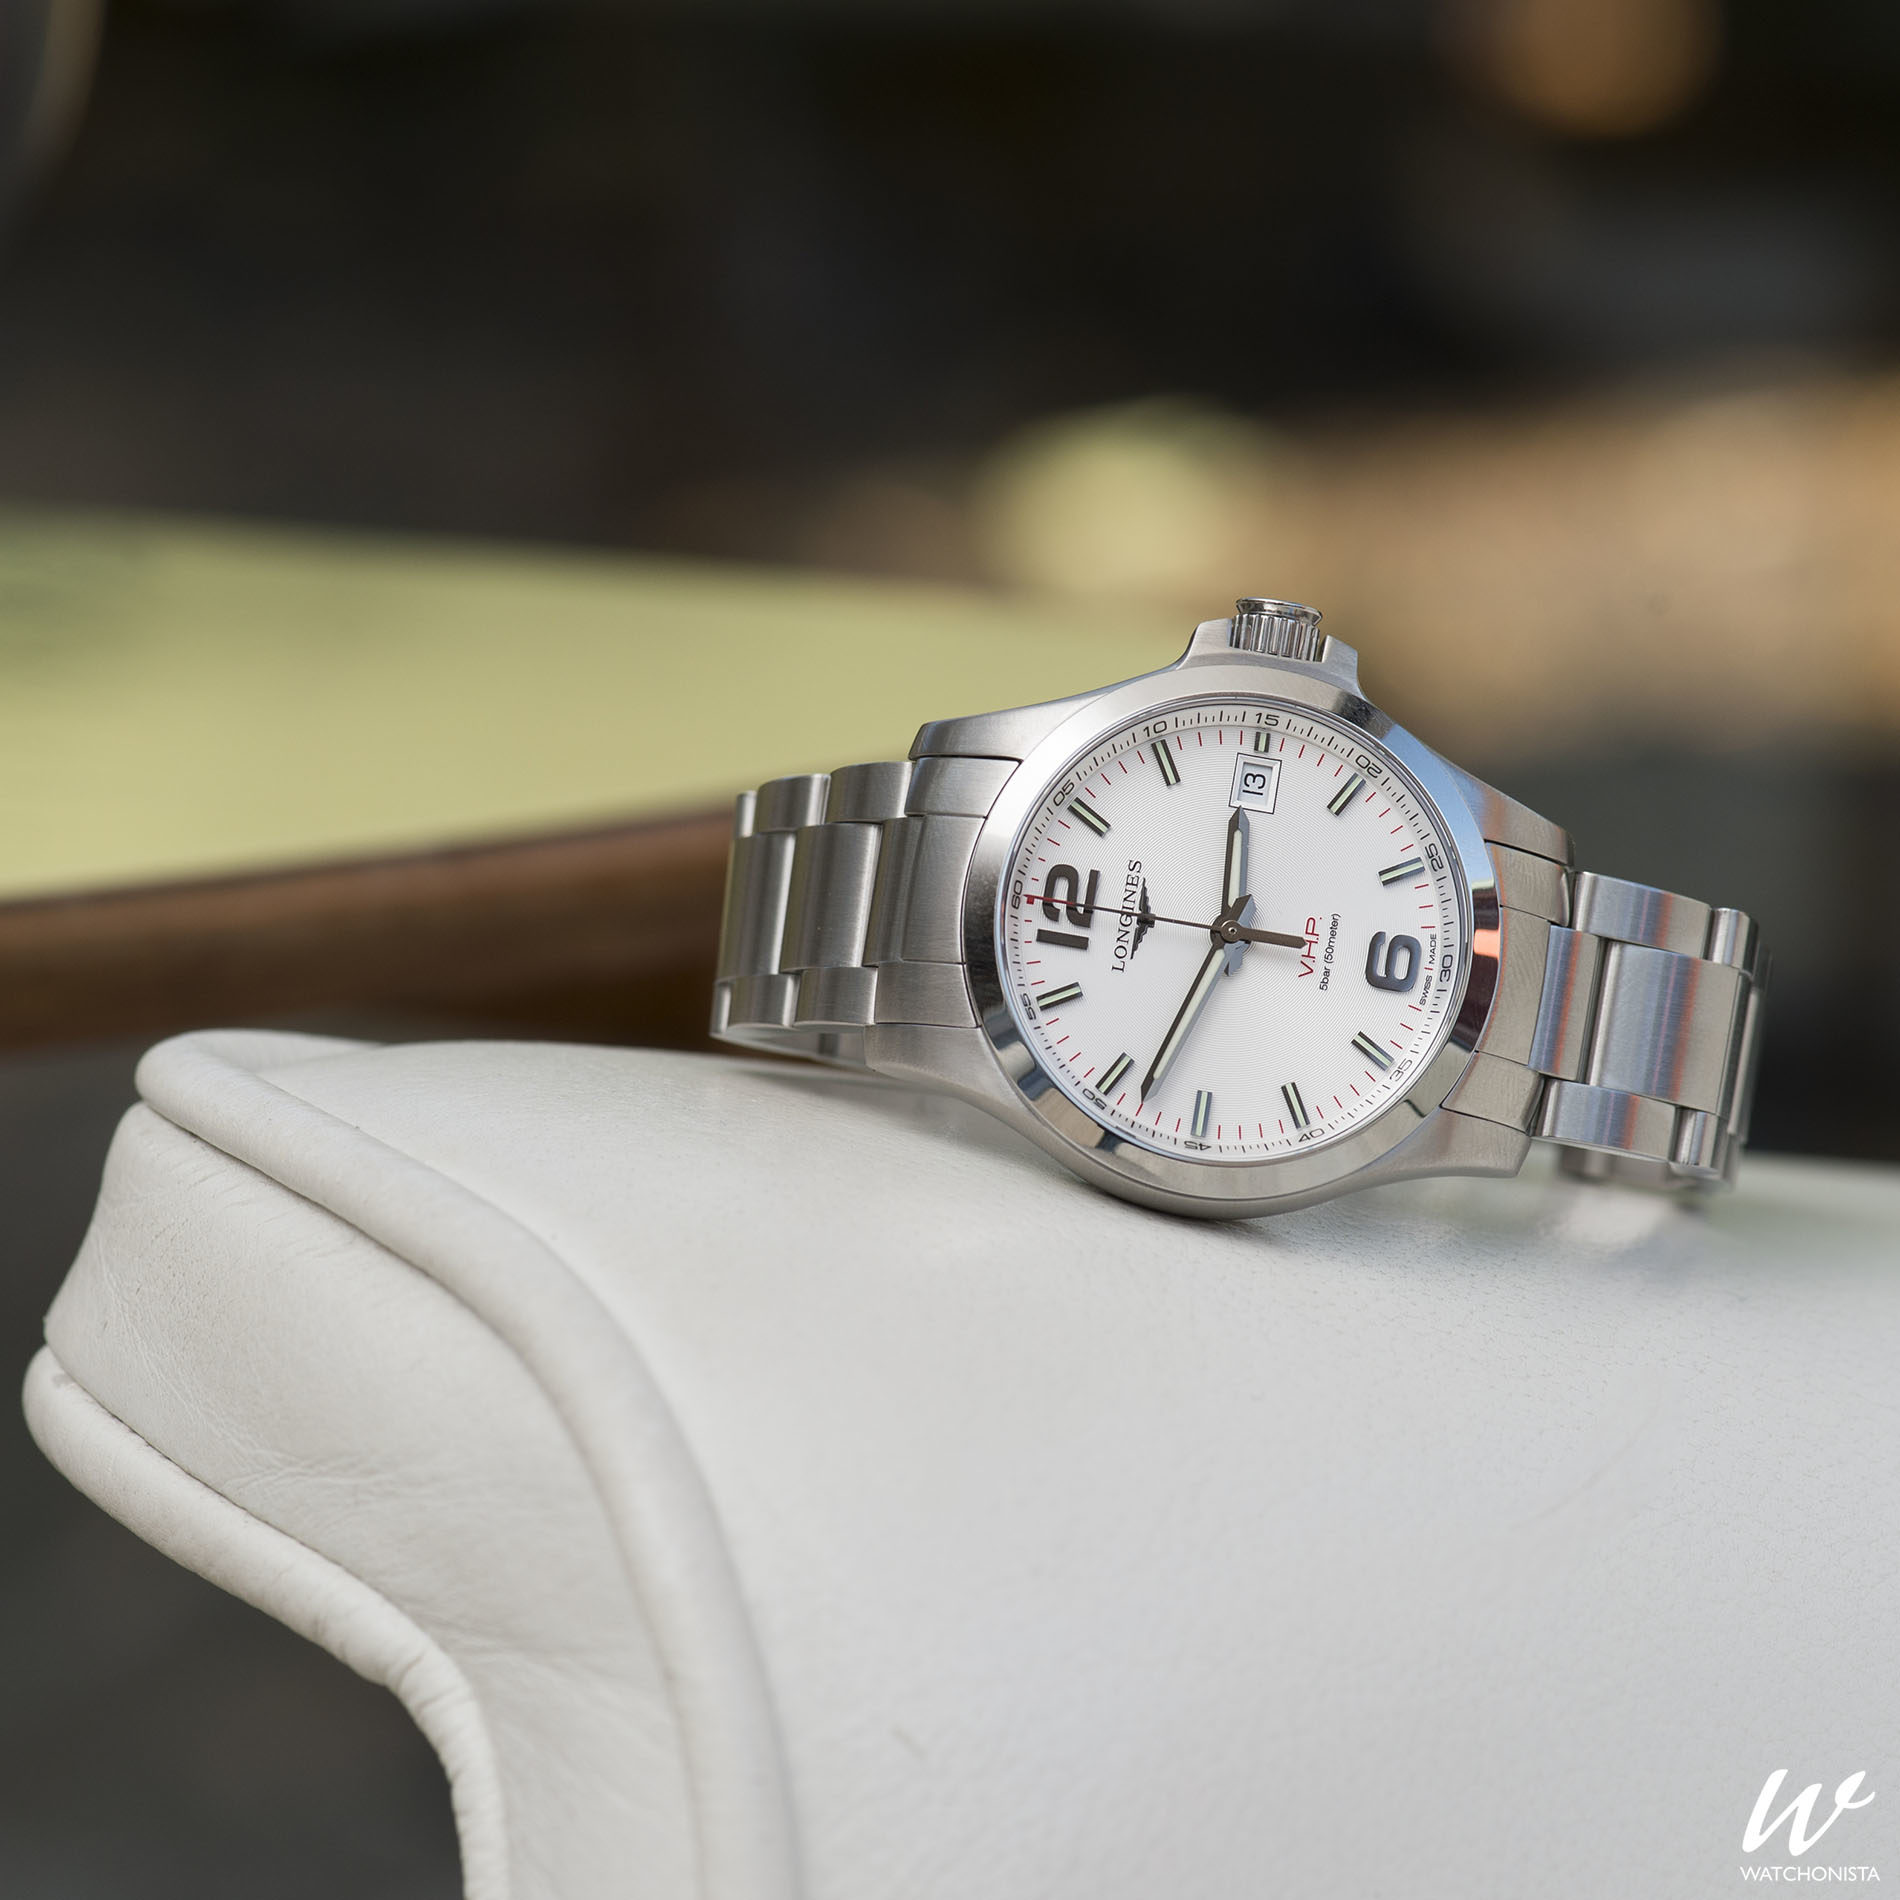 edd652793 In-depth: The Longines Conquest V.H.P. series | Watchonista